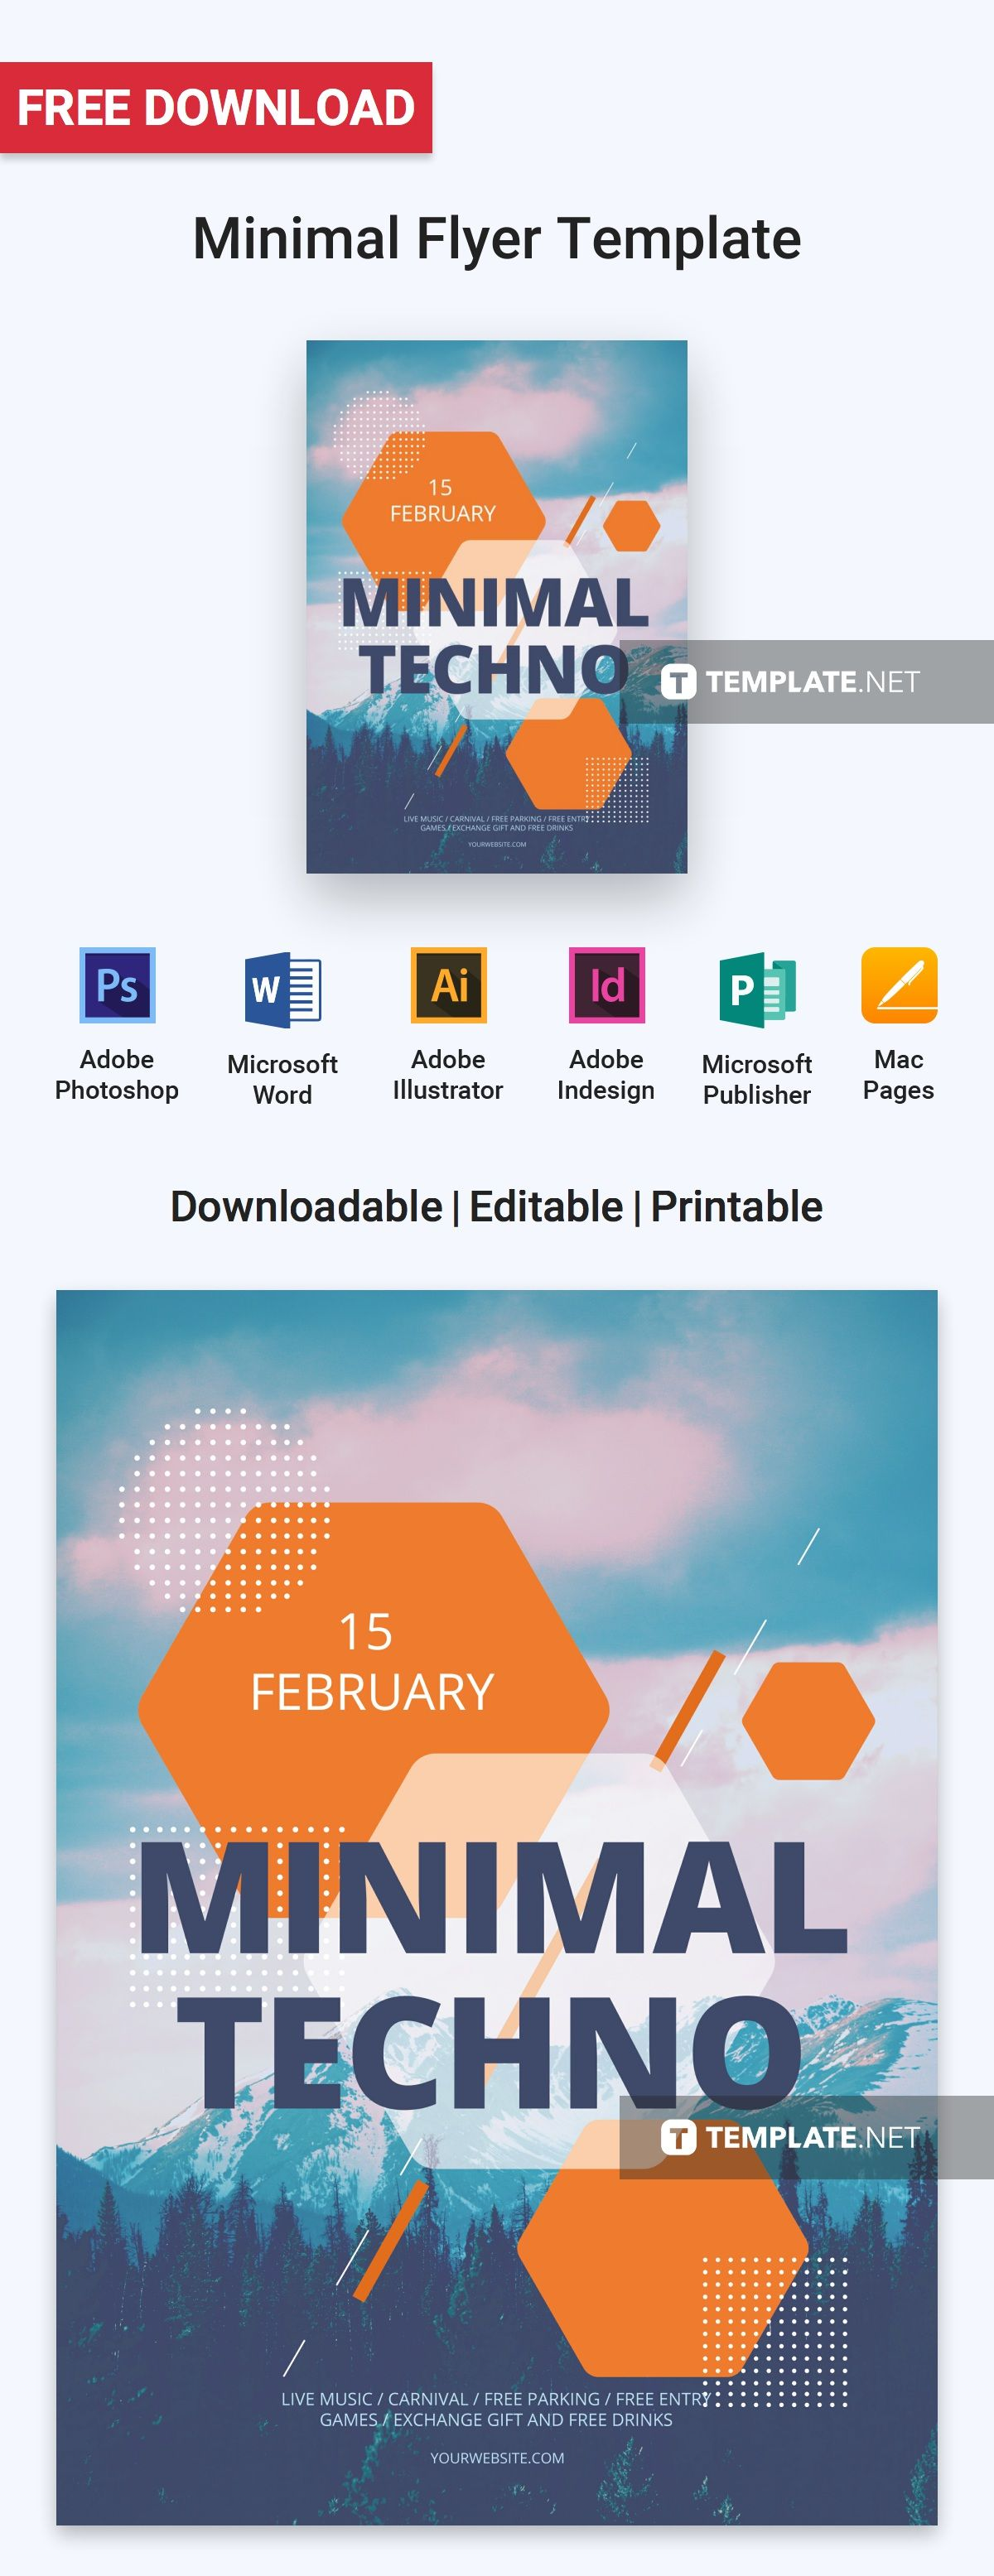 Free Minimal Flyer Flyer template, Free flyer templates